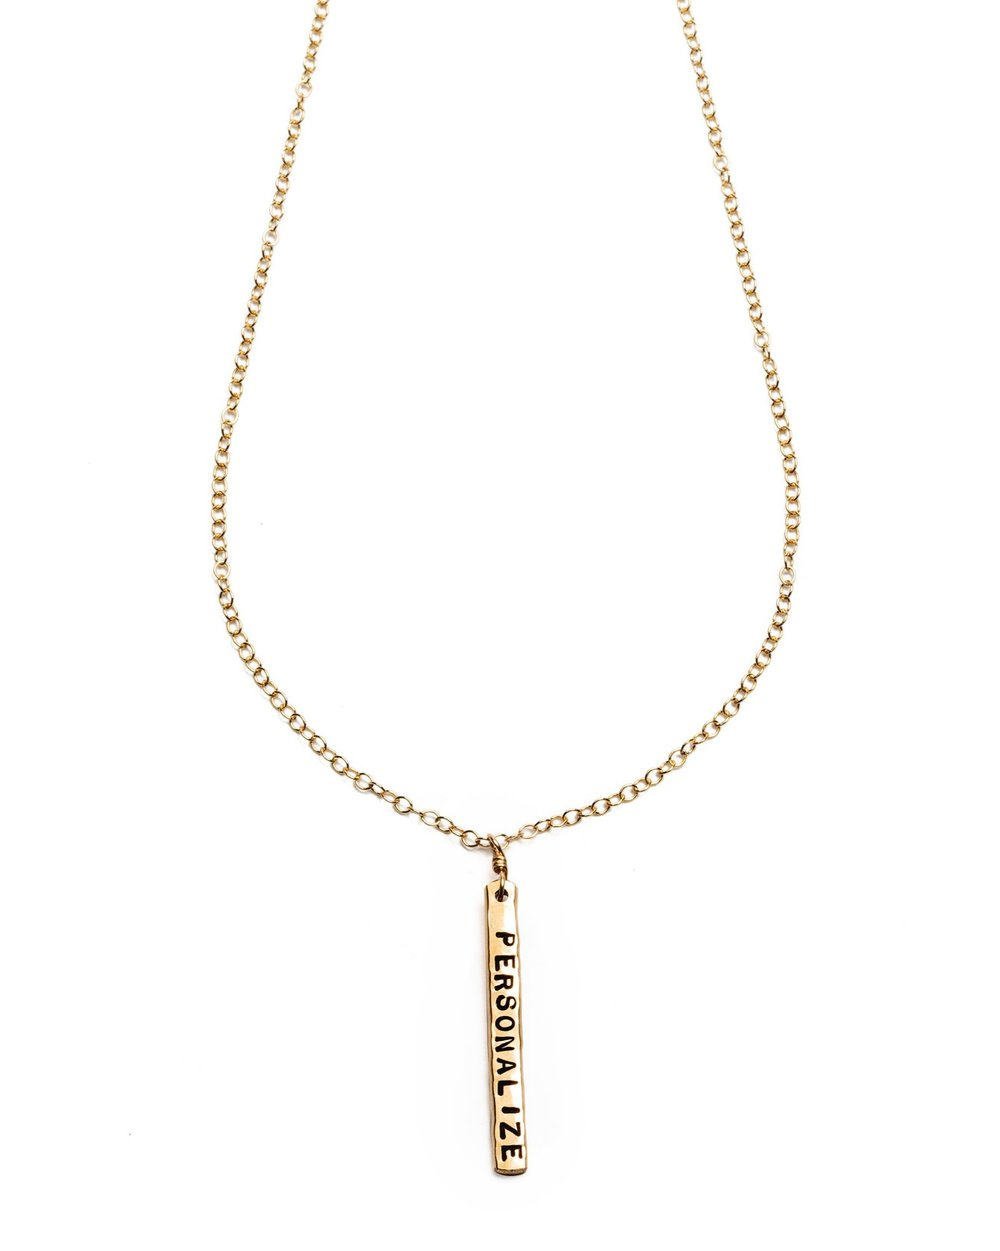 Customizable Double-Sided Vertical Zayit Bar necklace